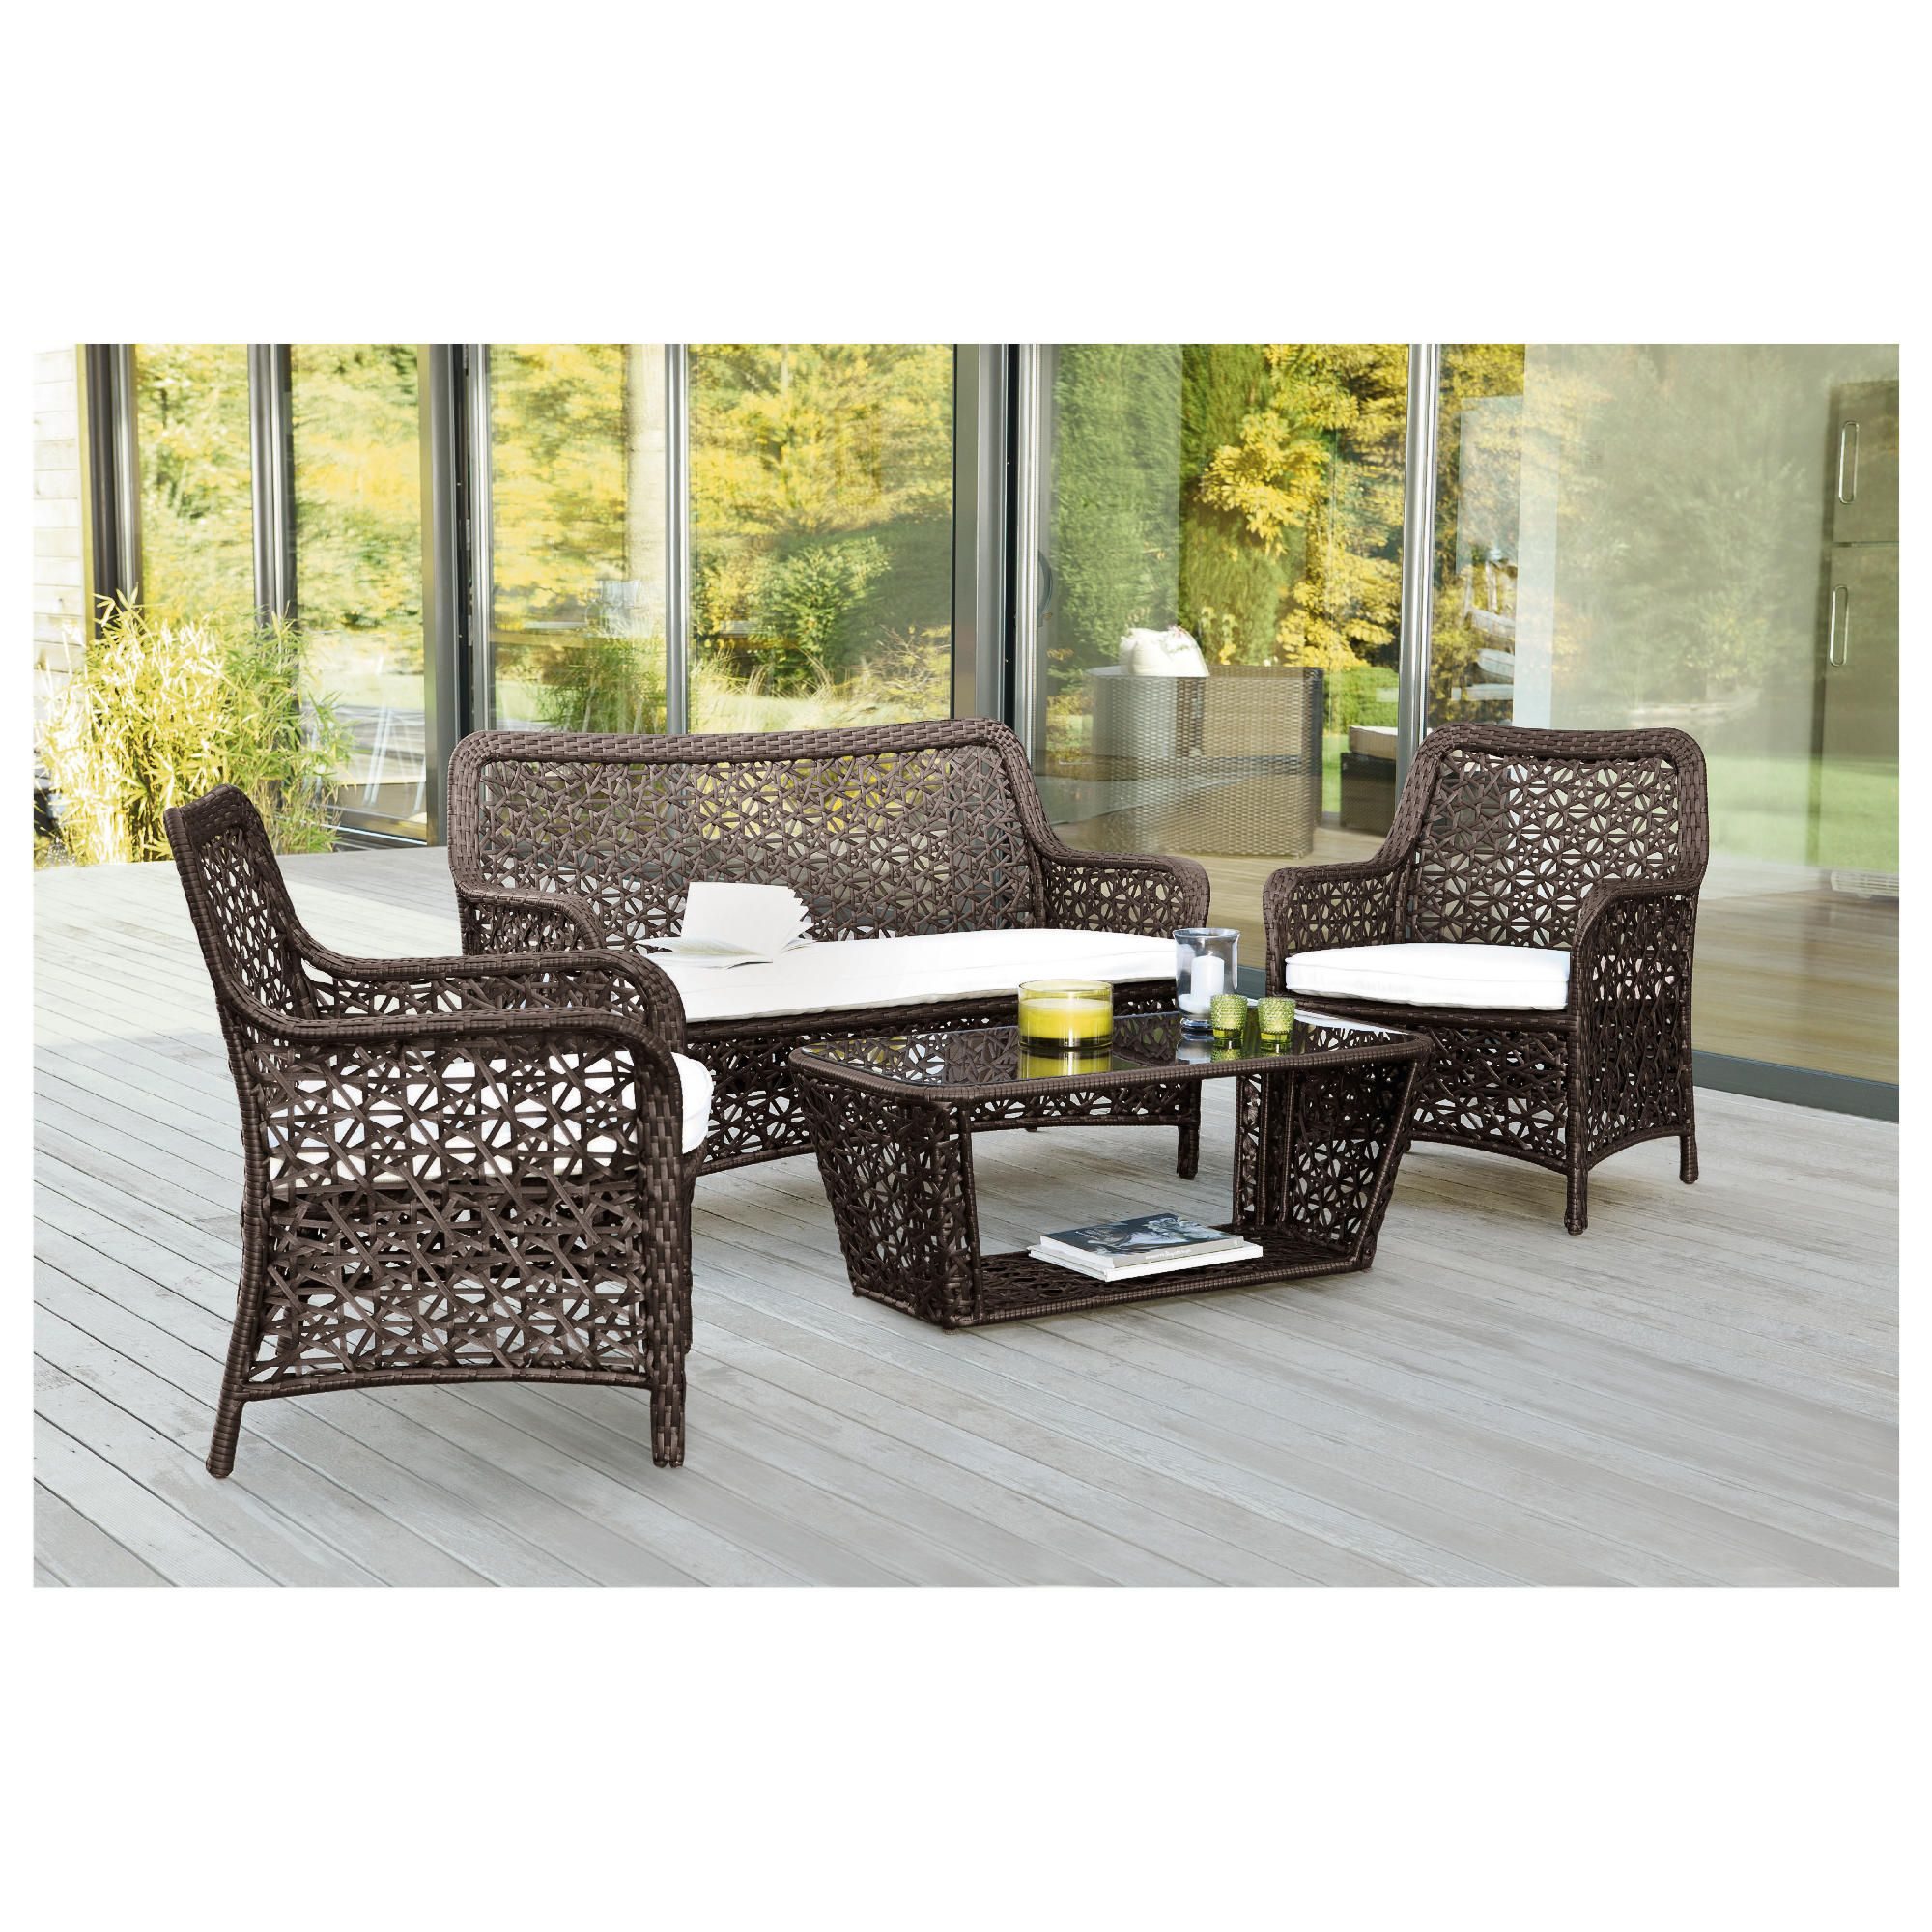 Biscayne Lounge Set 4 pcs at Tesco Direct